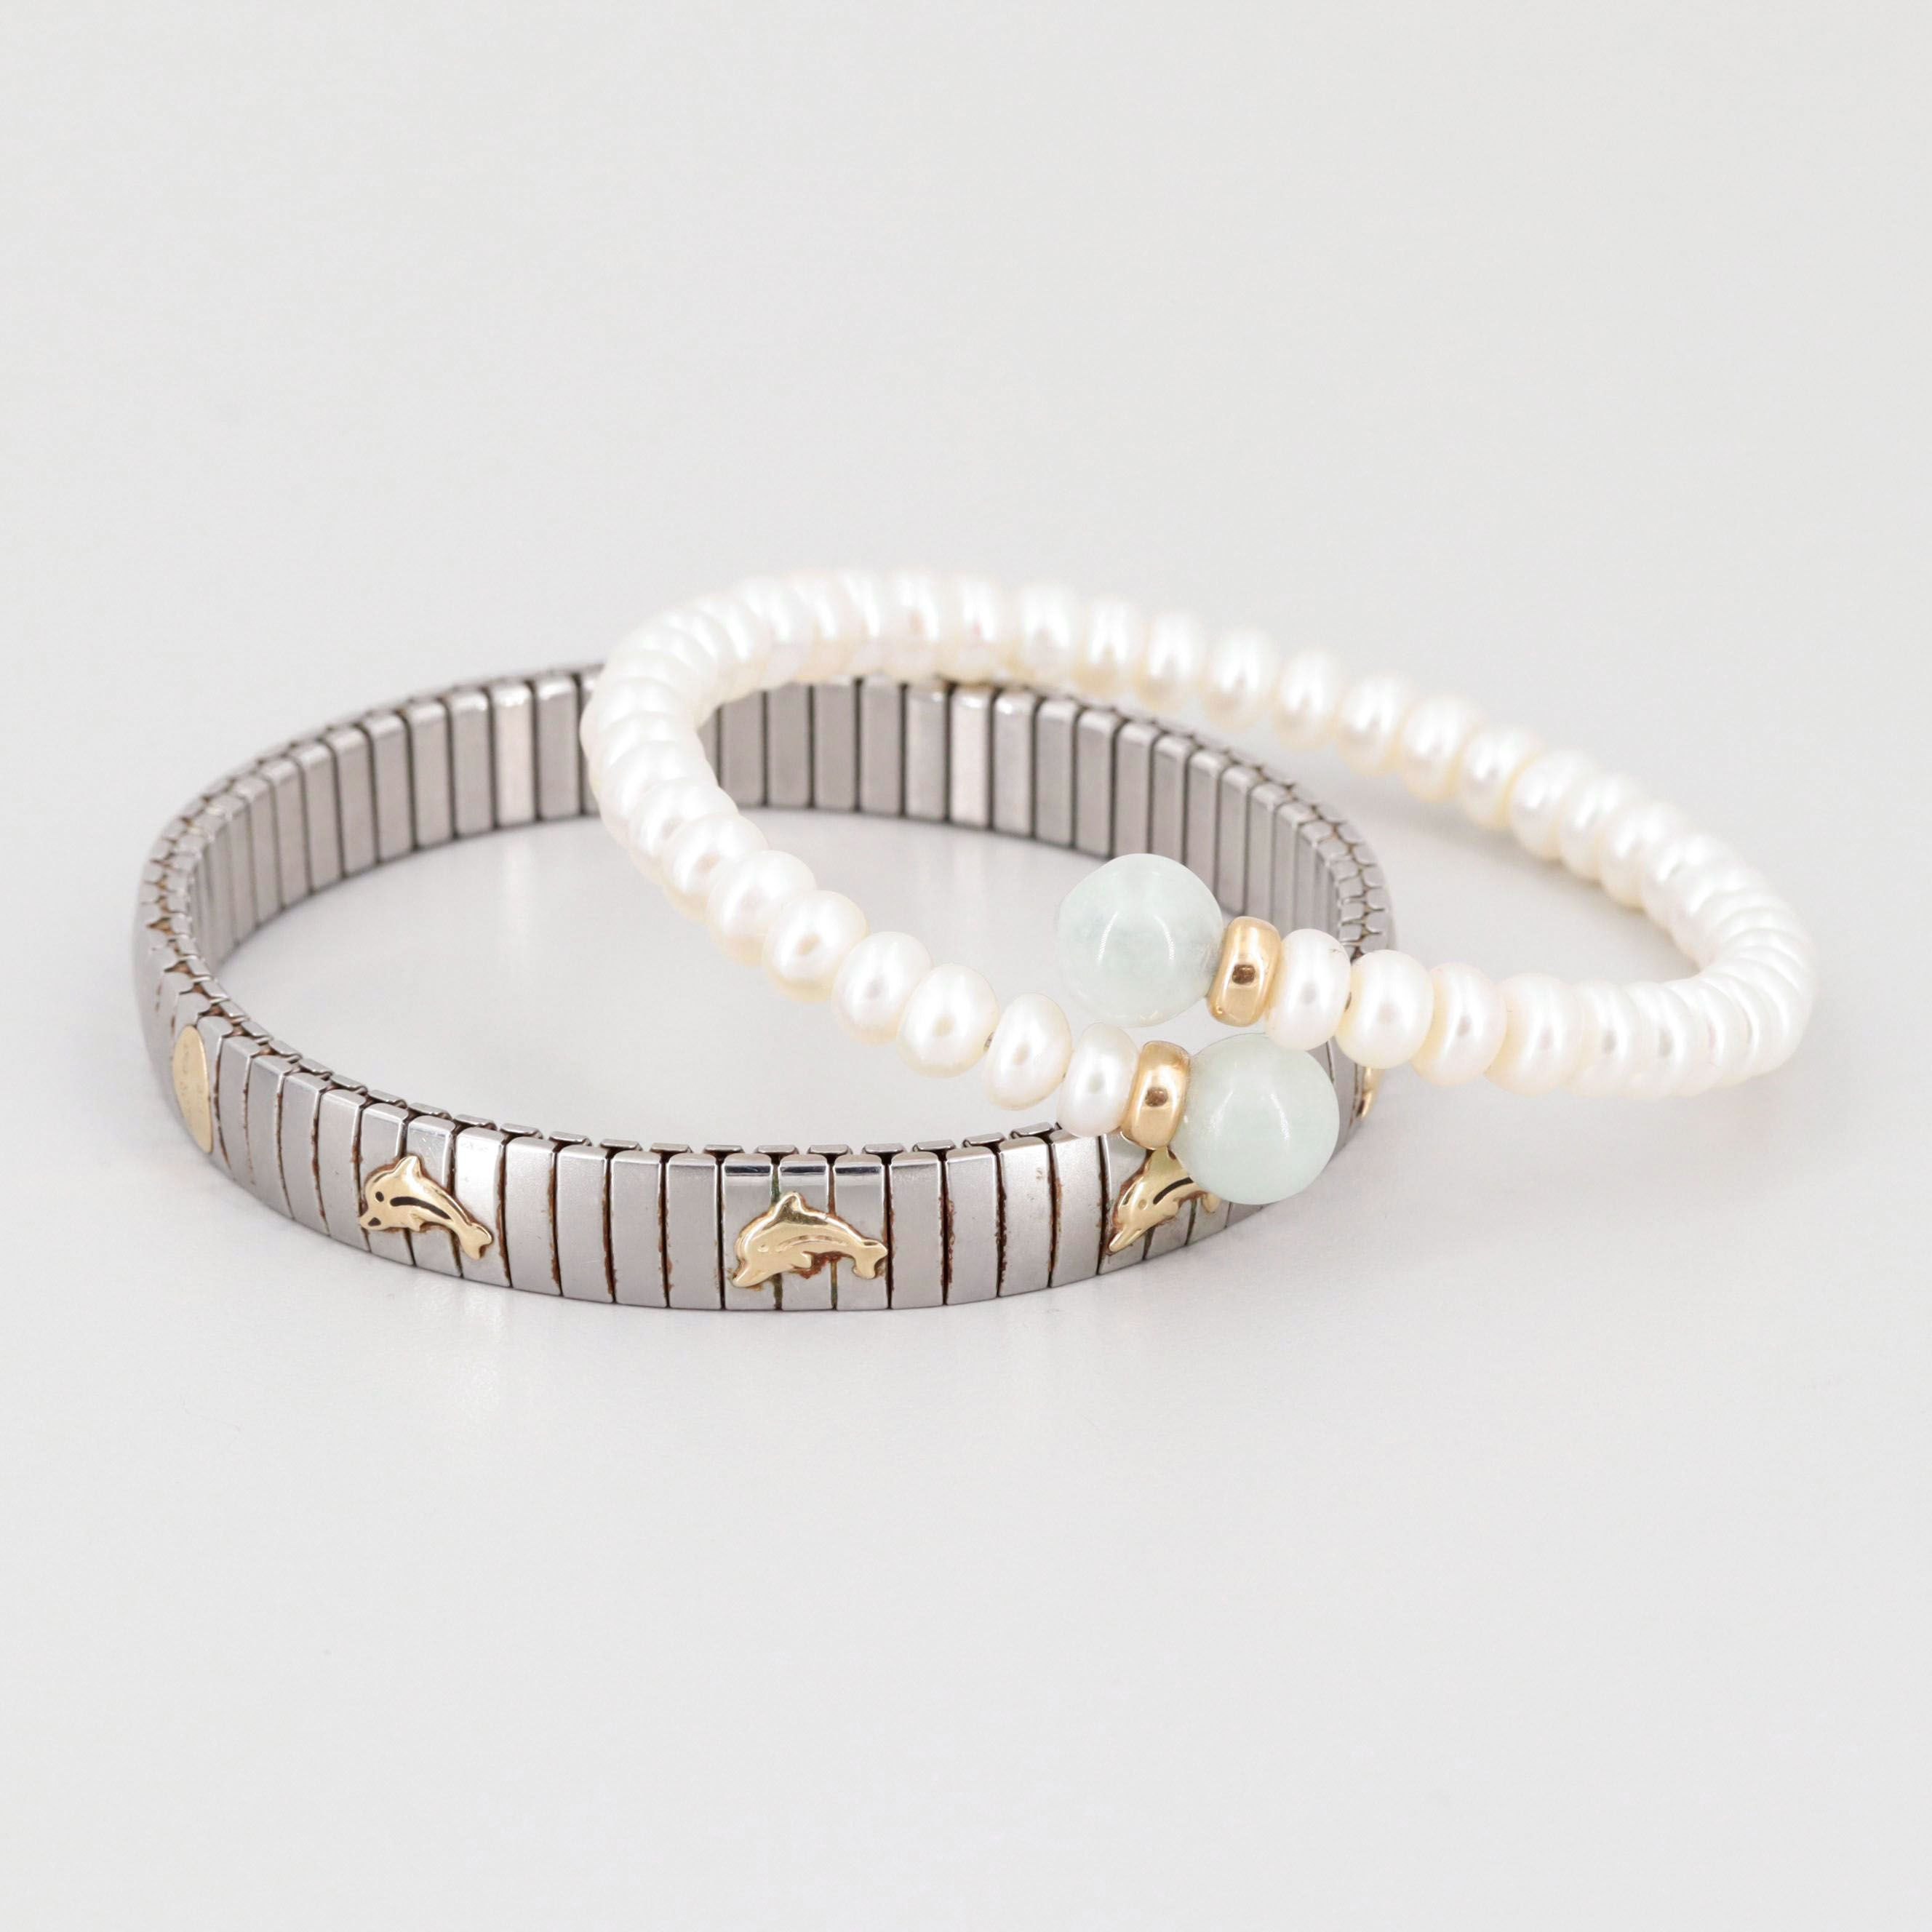 Silver Tone Jadeite and Cultured Pearl Bracelets with 14K Yellow Gold Accents